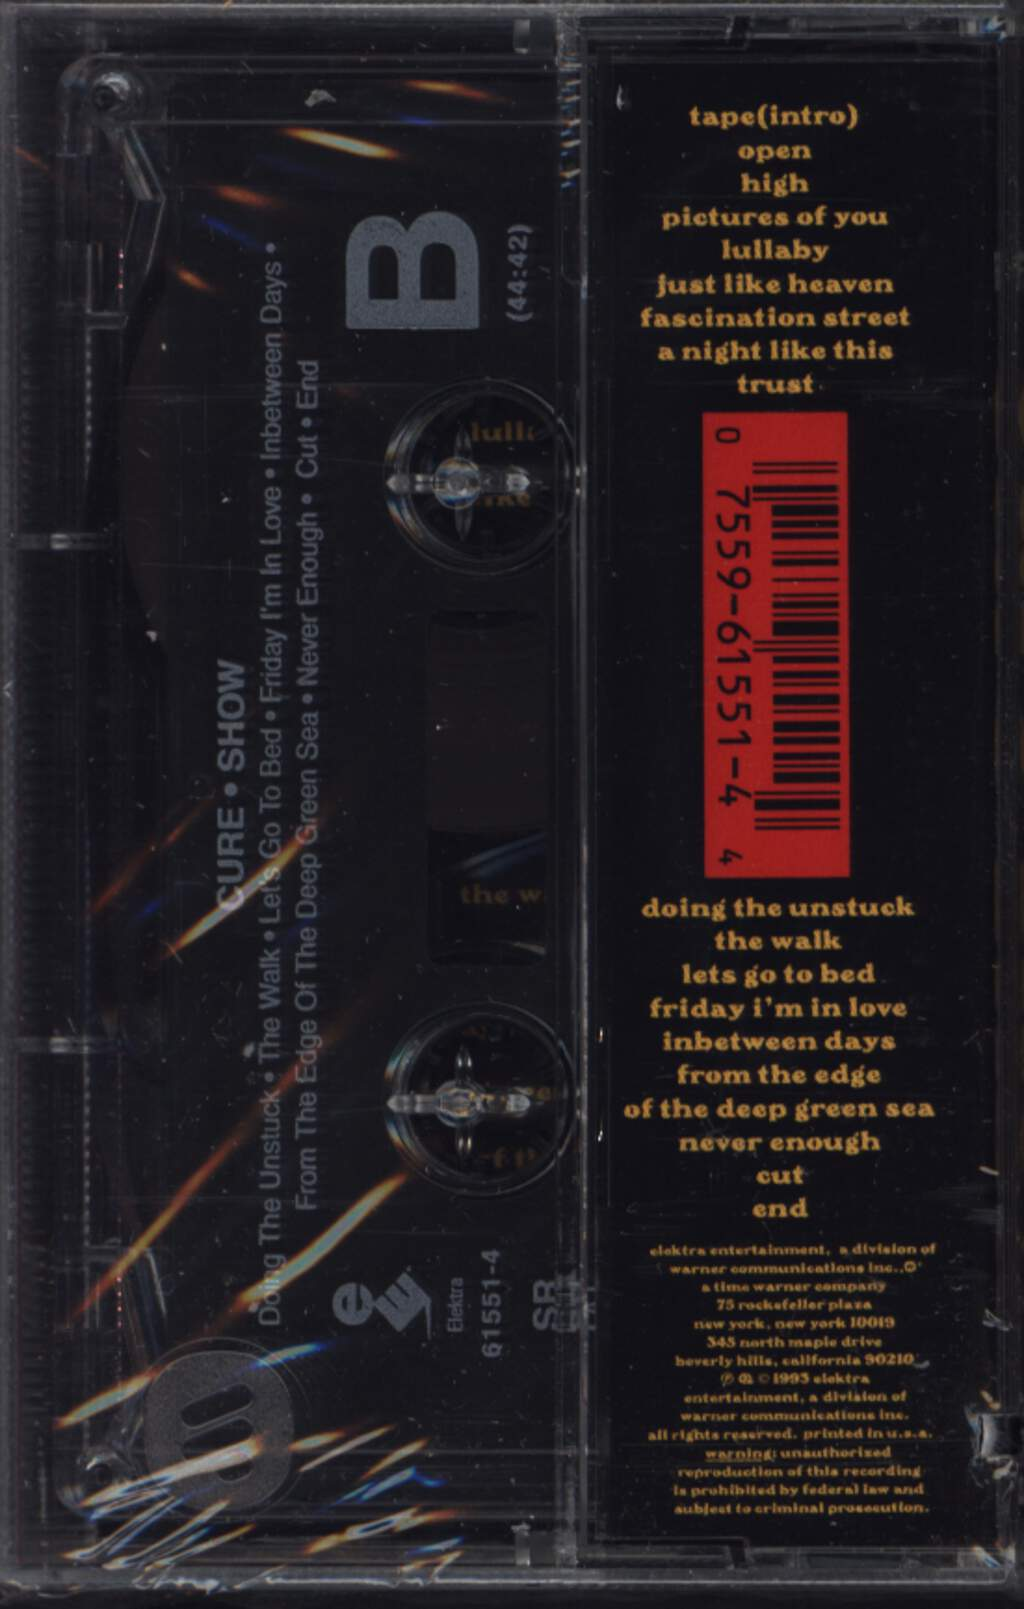 The Cure: Show, Compact Cassette